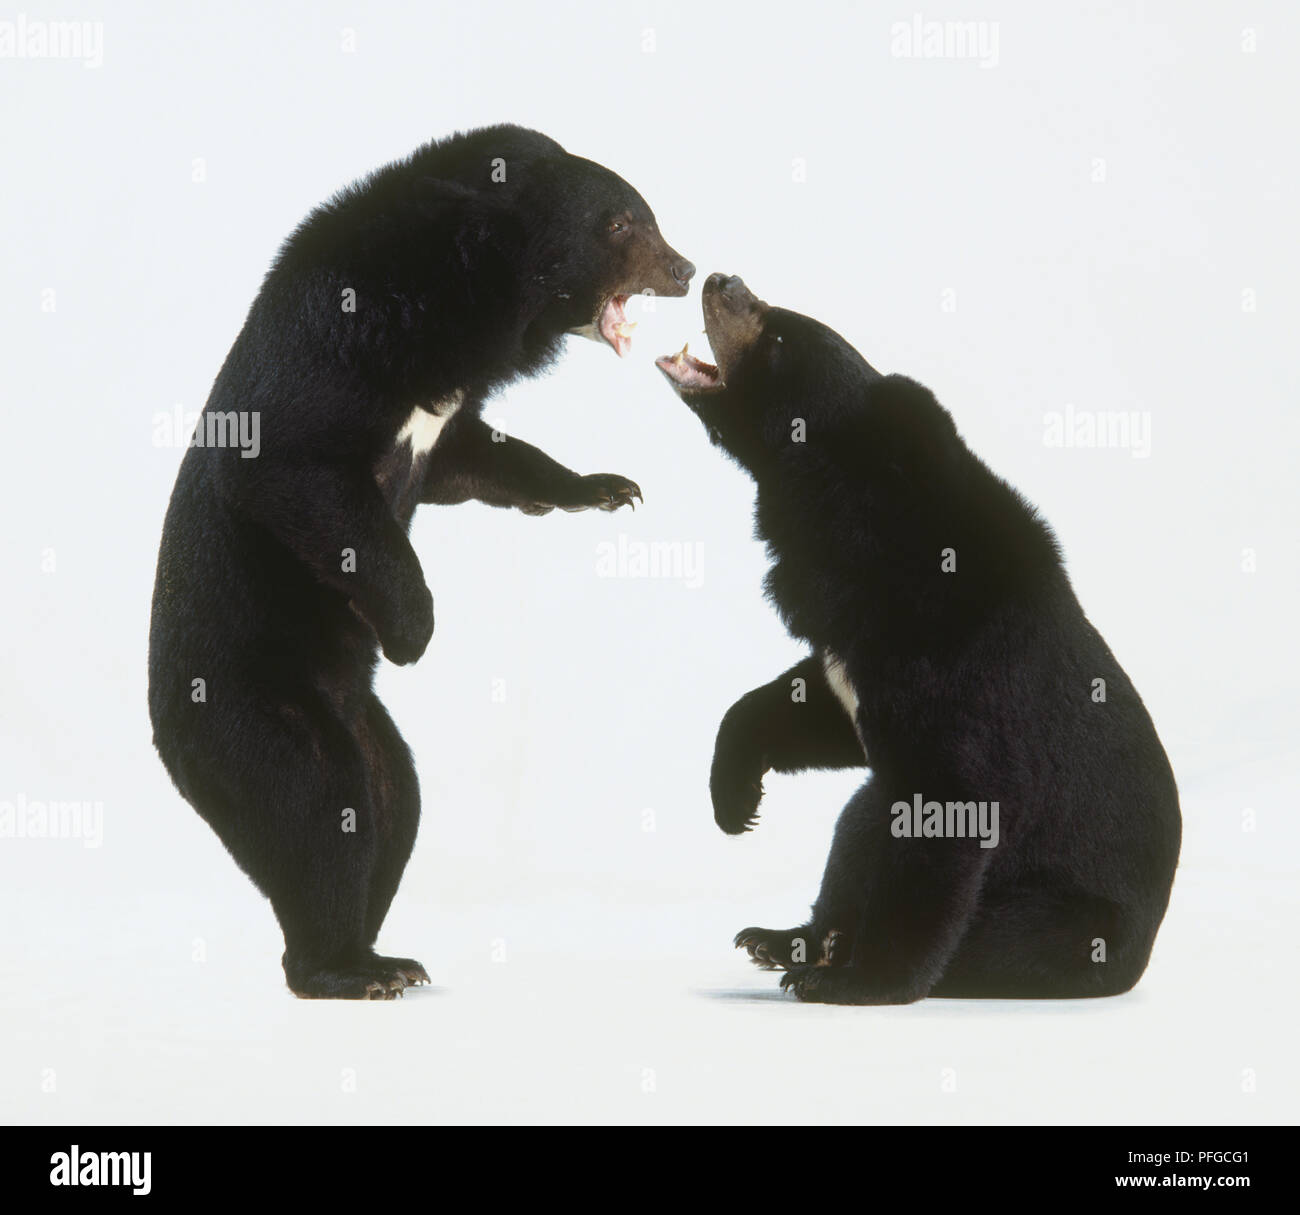 Two Asian Black Bears (Ursus thibetanus or Selenarctos thibetanus), face to face Stock Photo